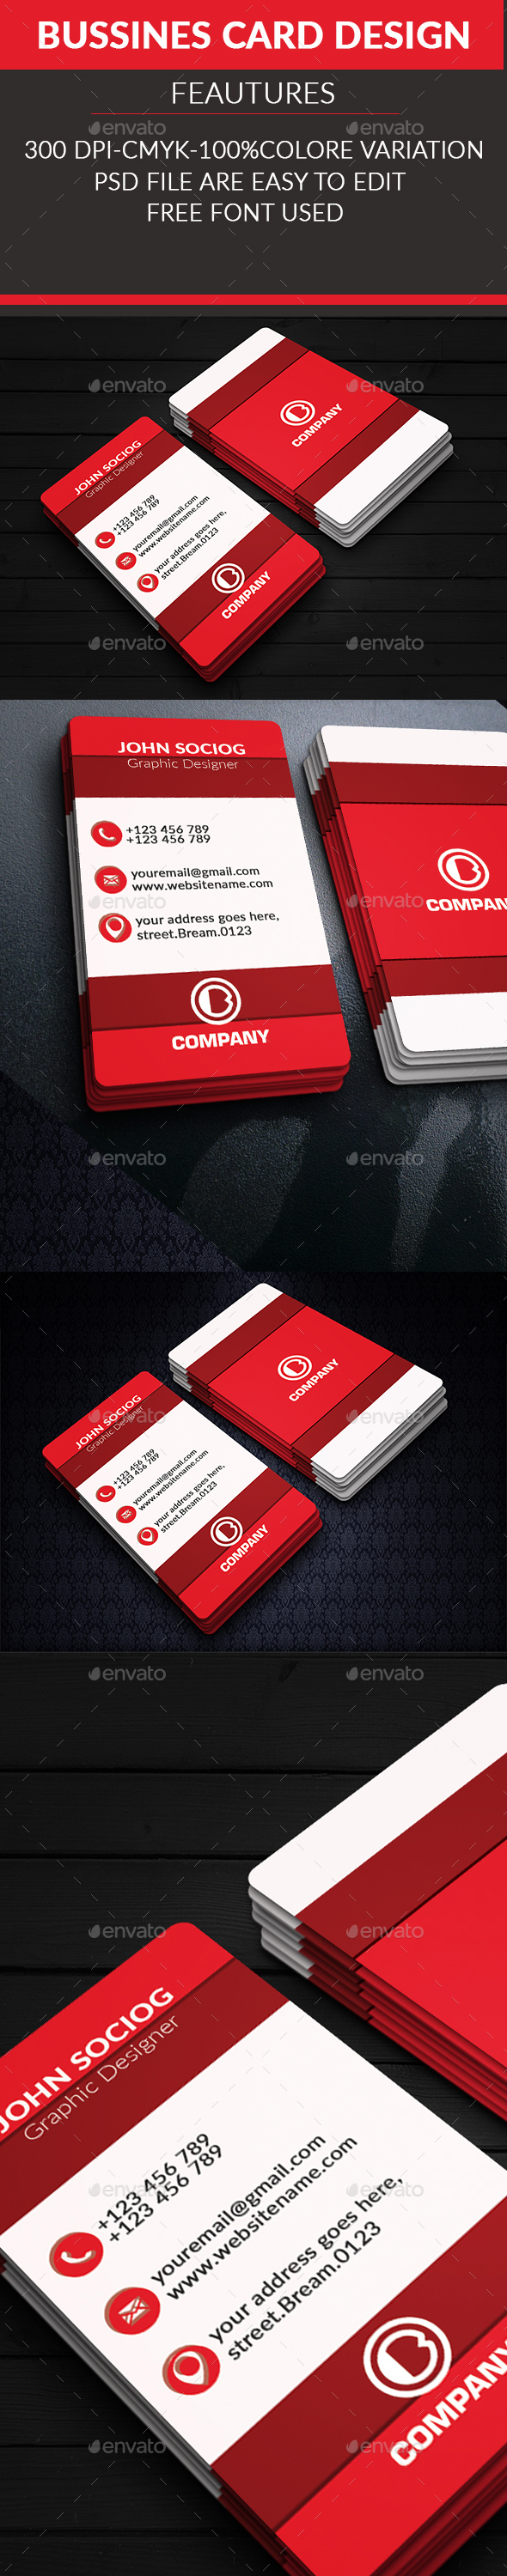 Corporate Business Card 2 - Business Cards Print Templates